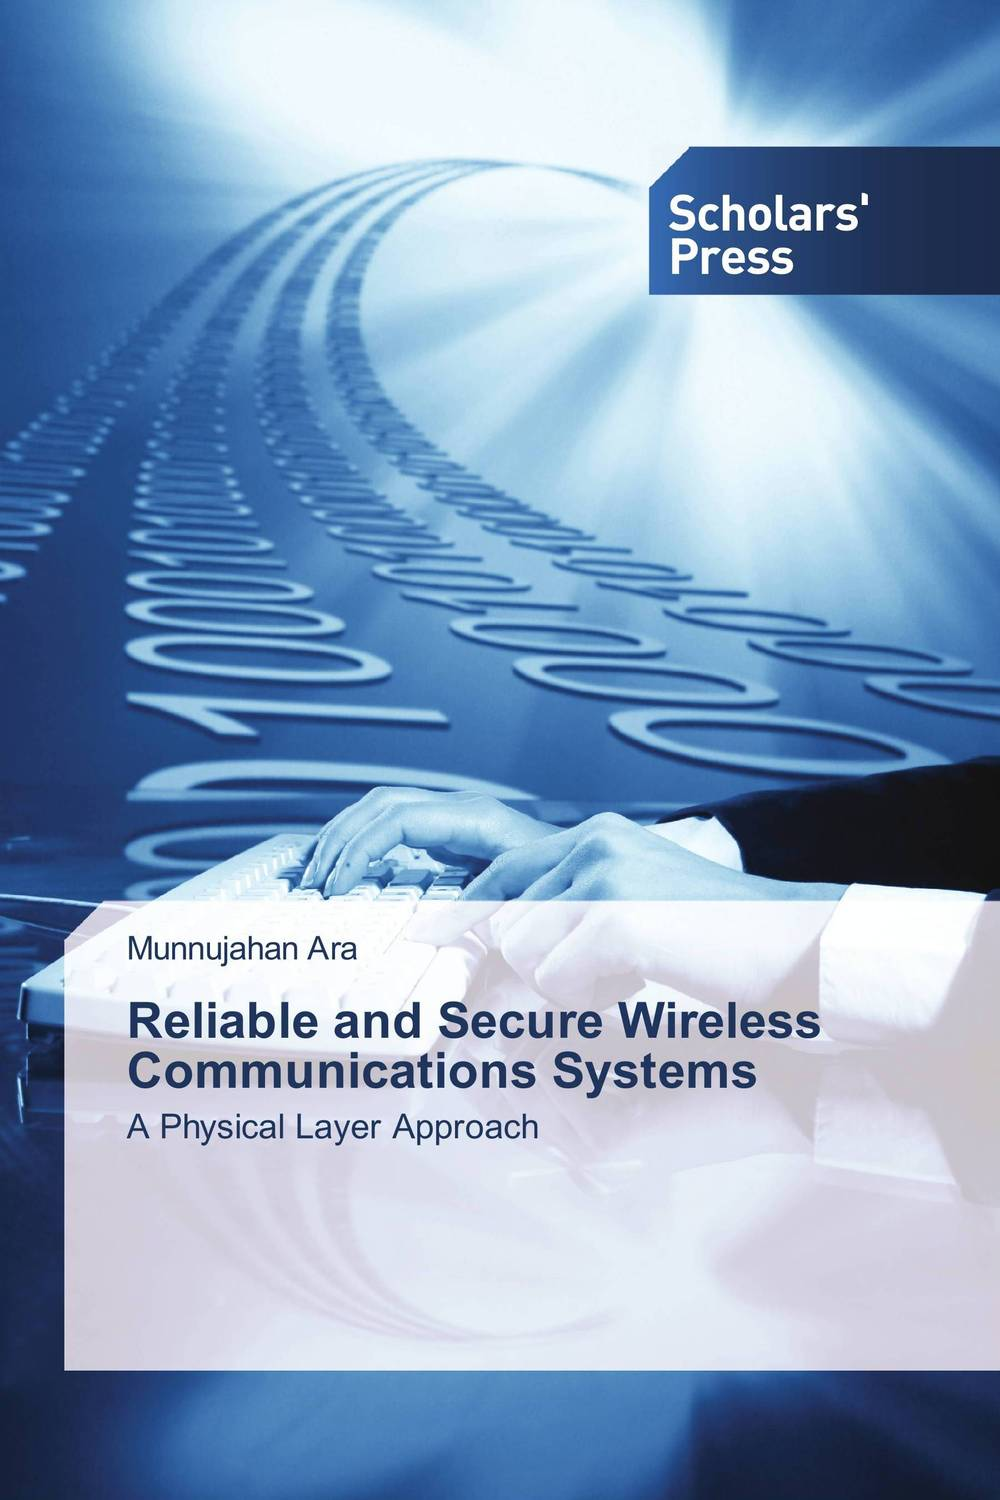 Reliable and Secure Wireless Communications Systems wireless ofdm and mimo ofdm communications